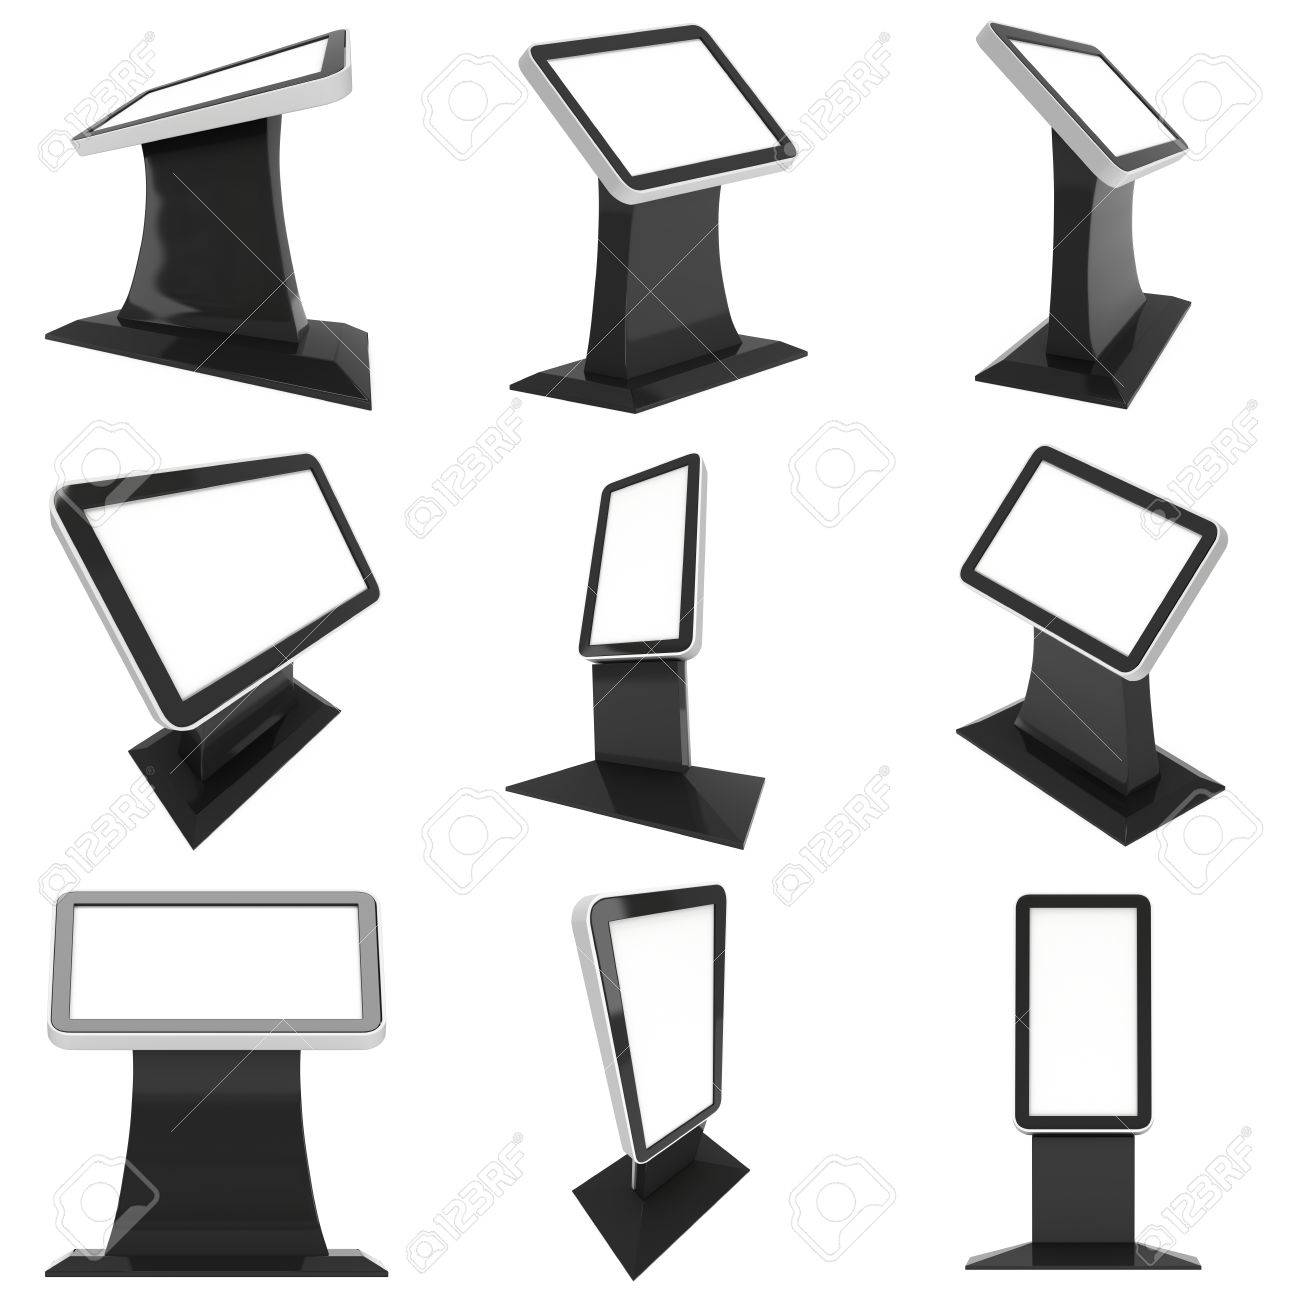 Lcd Screen Floor Stand Set Blank Trade Show Booth Collection Stock Photo Picture And Royalty Free Image Image 57661433